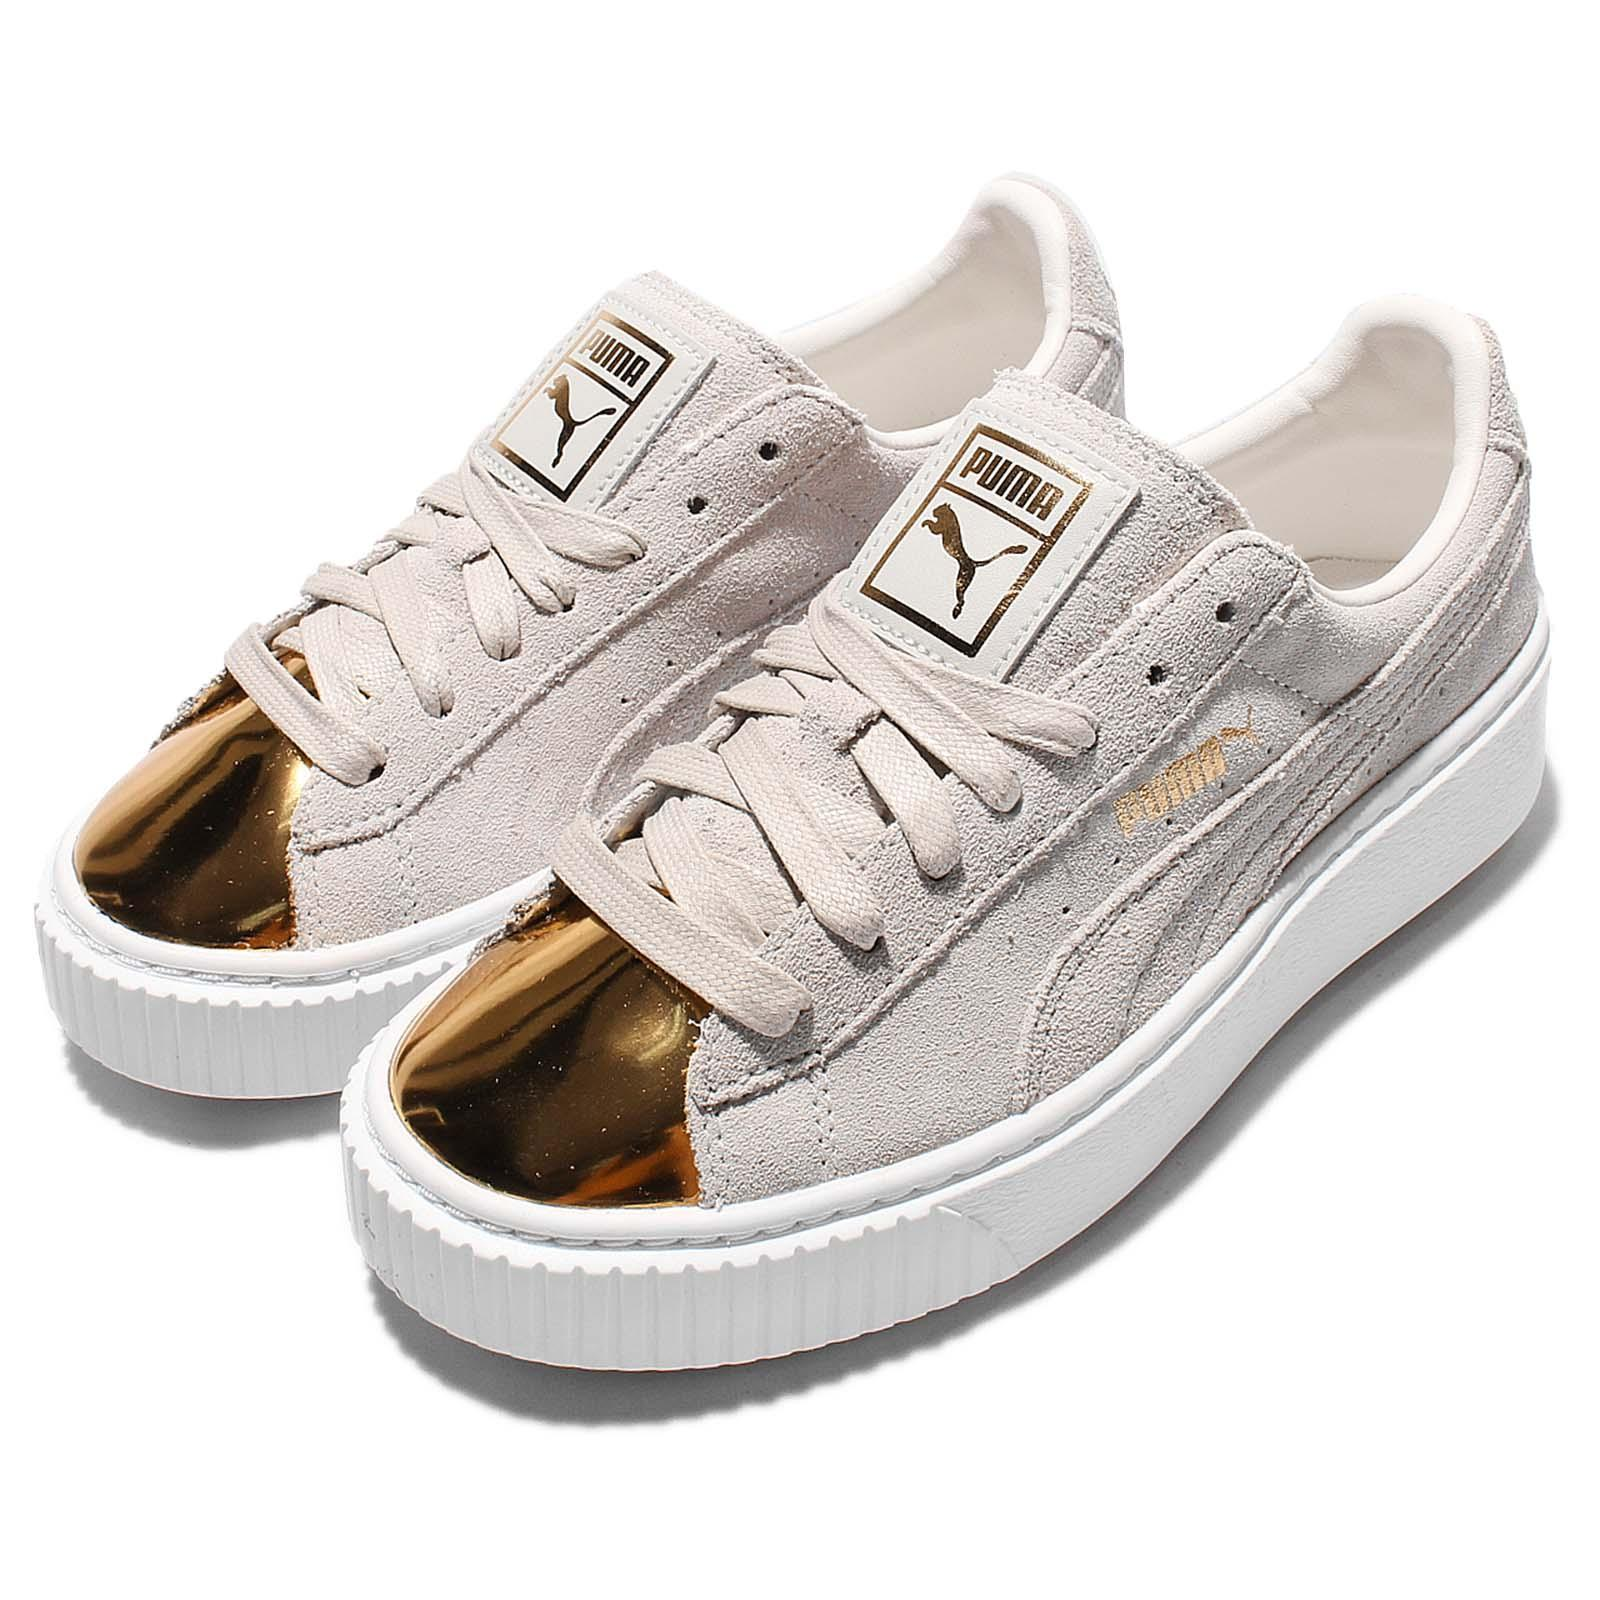 38eafba2ca2 Details about Puma Suede Platform Gold Toe Pack Beige Rihanna Womens Shoes  362222-01